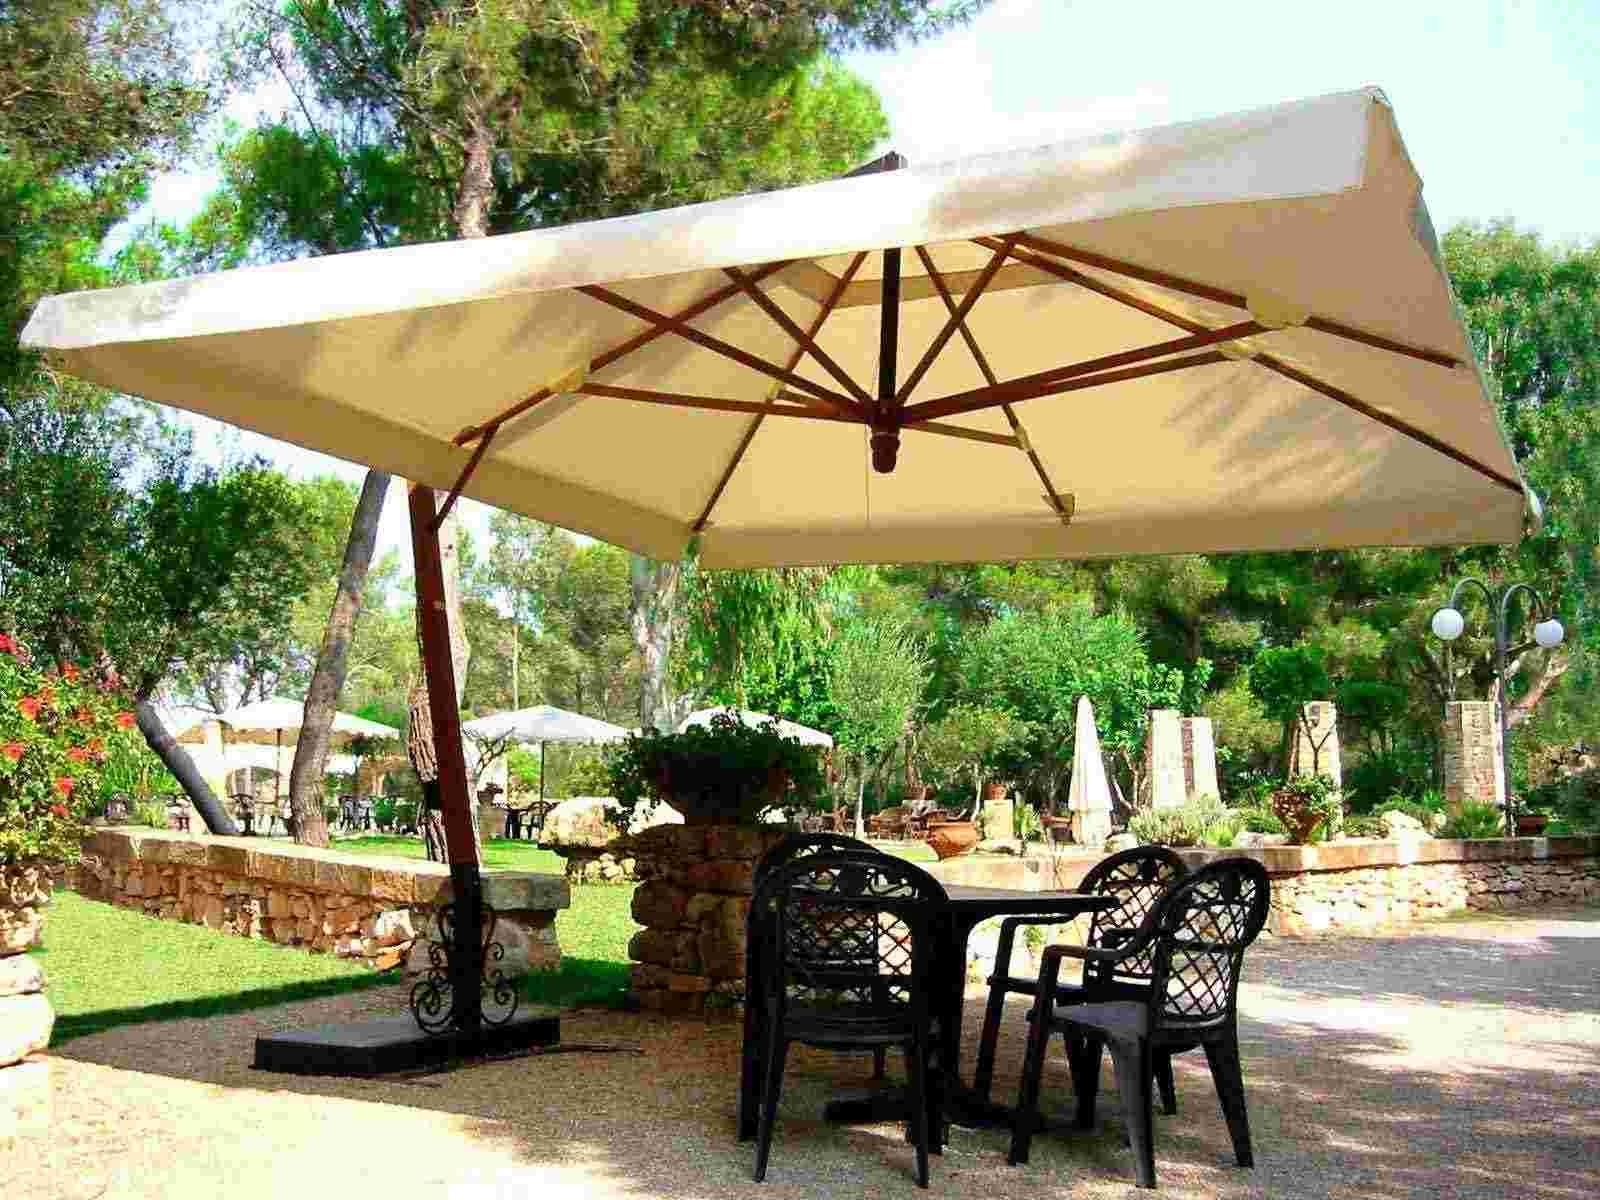 Well Known Different Types Of Patio Umbrellas – Virily Intended For Patio Umbrellas With Wheels (View 14 of 20)